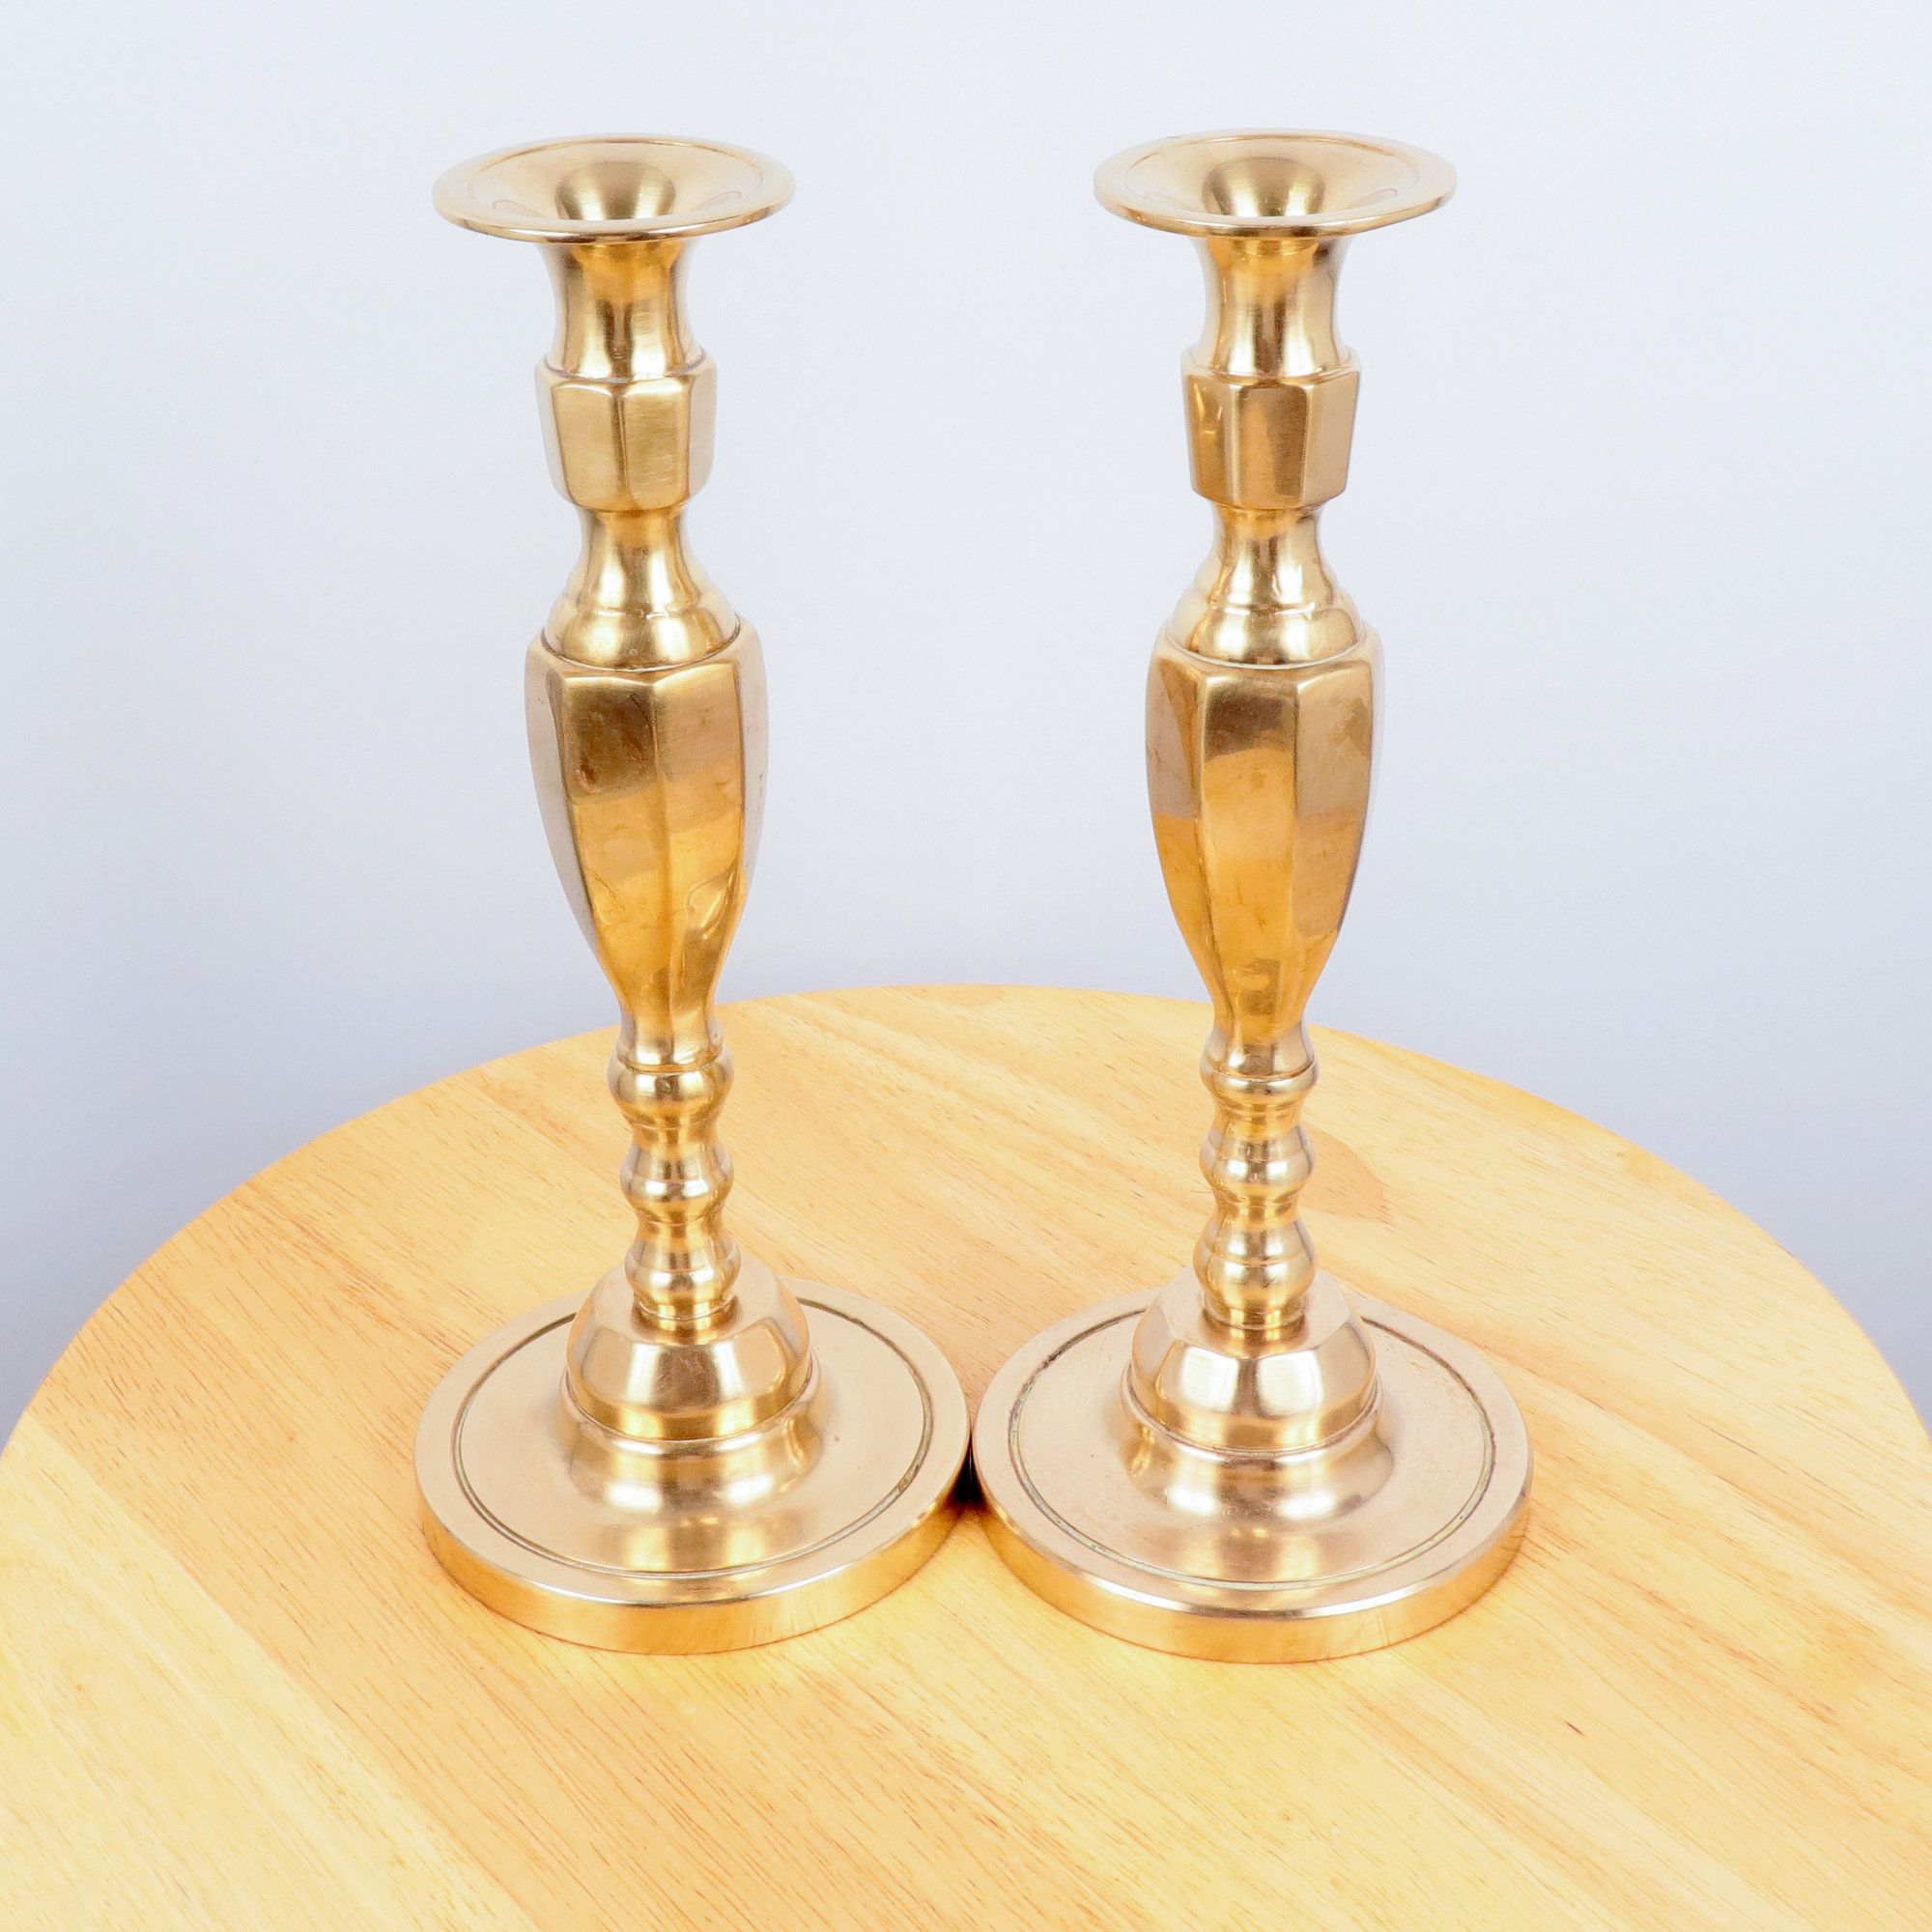 Vintage Set of Two Large Brass Candlestick Holders with Point